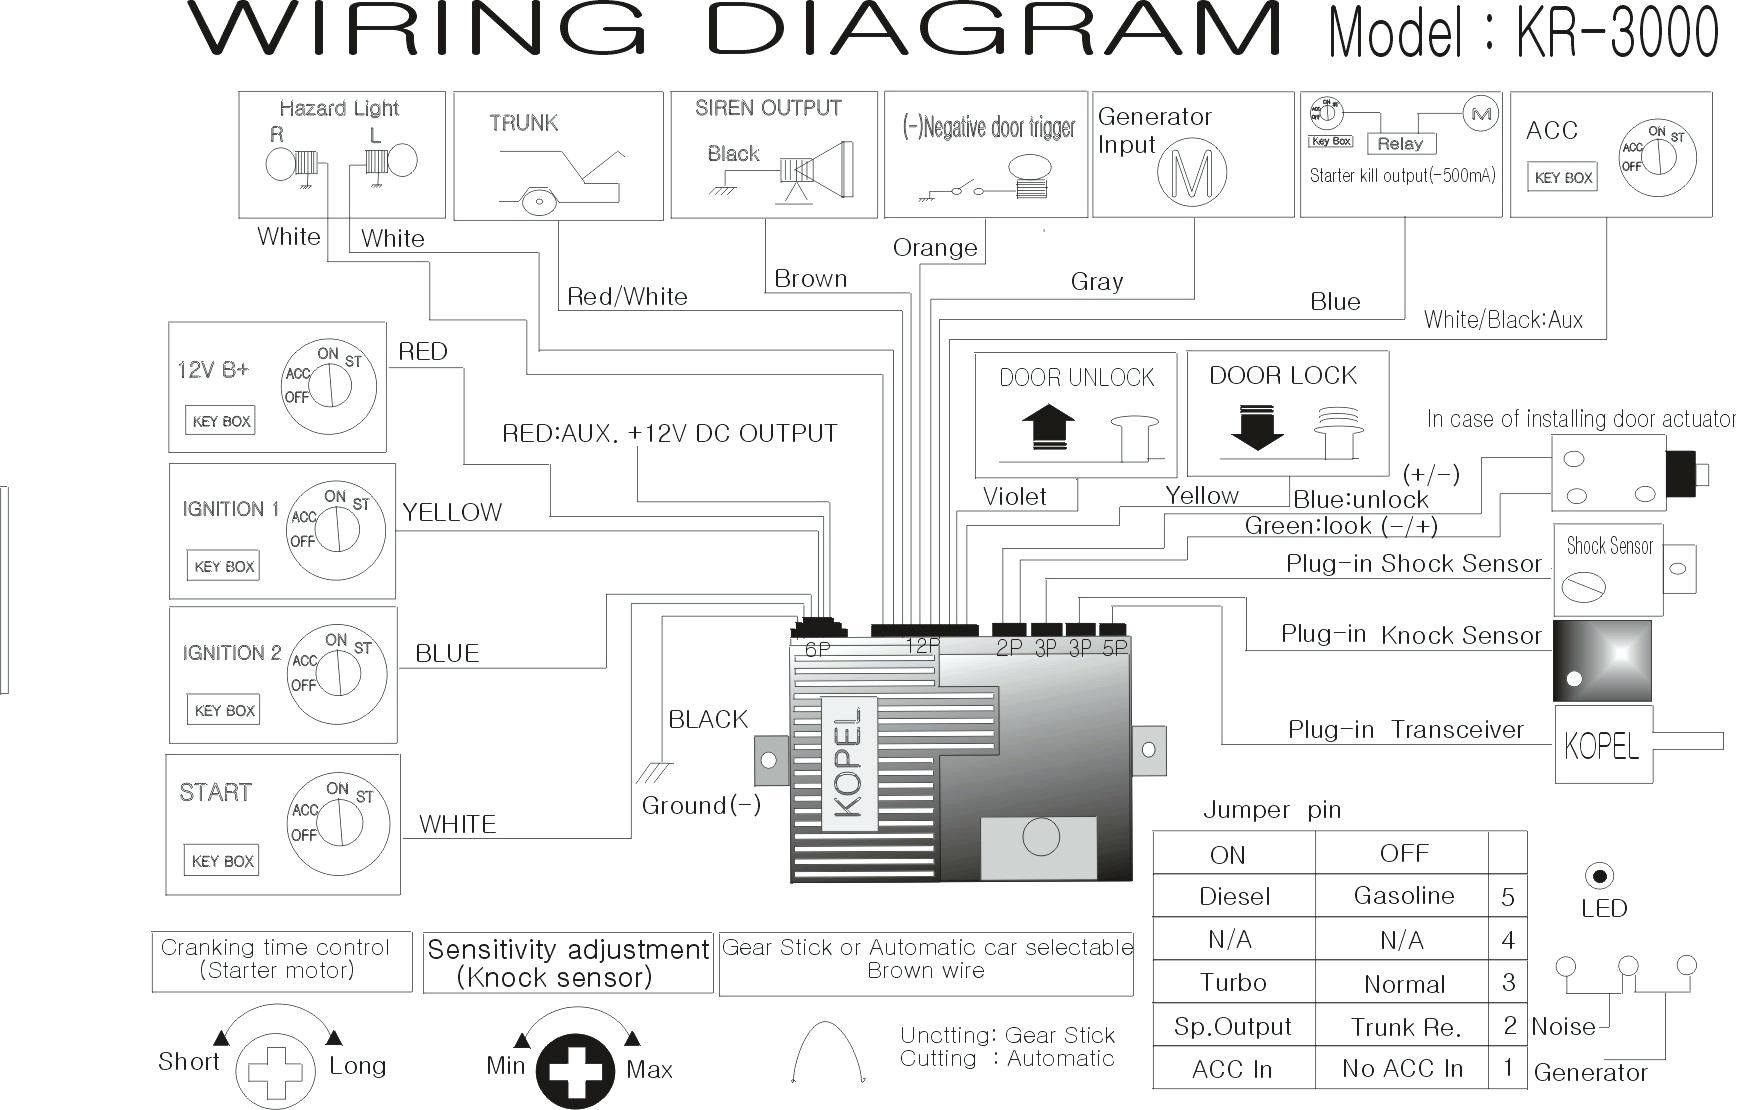 Car Alarm System Wiring Diagram Car Security System Wiring Diagram Copy Wiring Diagram for Ceiling Of Car Alarm System Wiring Diagram